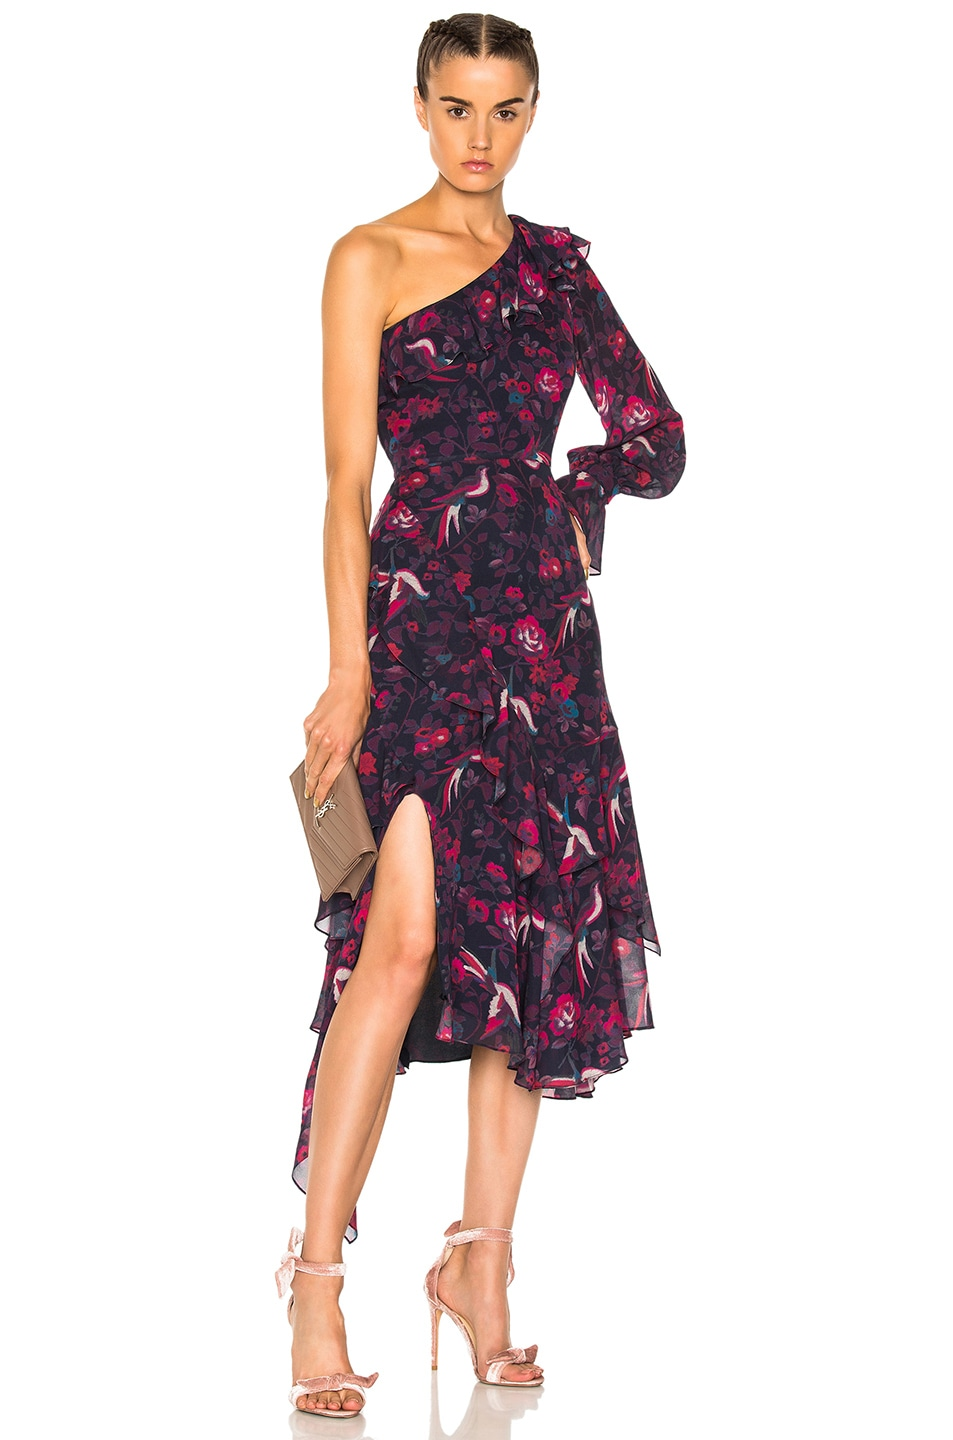 Tanya Taylor Isua Dress in Floral,Red